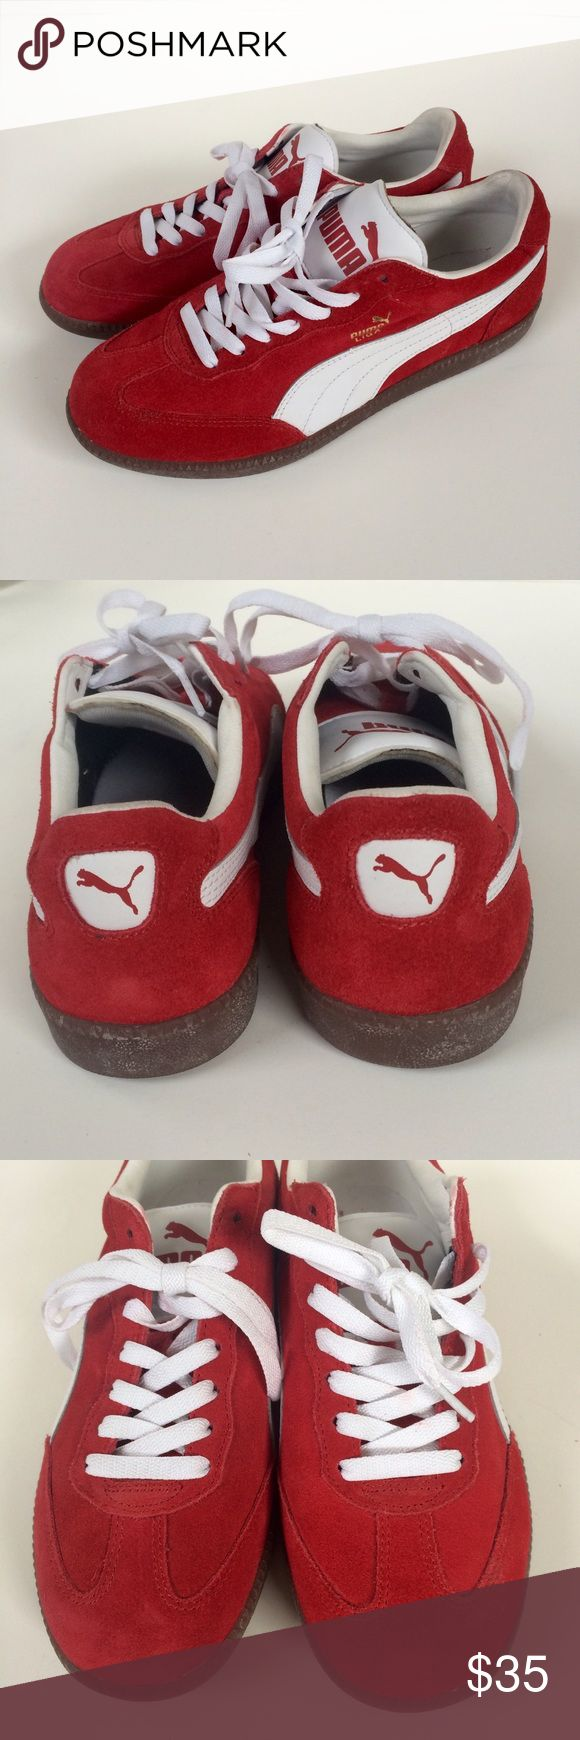 Host Pick Puma Liga Red and White Suede Shoes NWOT Puma Ladies Shoes in 8.5.  Never worn. Red suede.  Price is FIRM on this item. Puma Shoes Sneakers